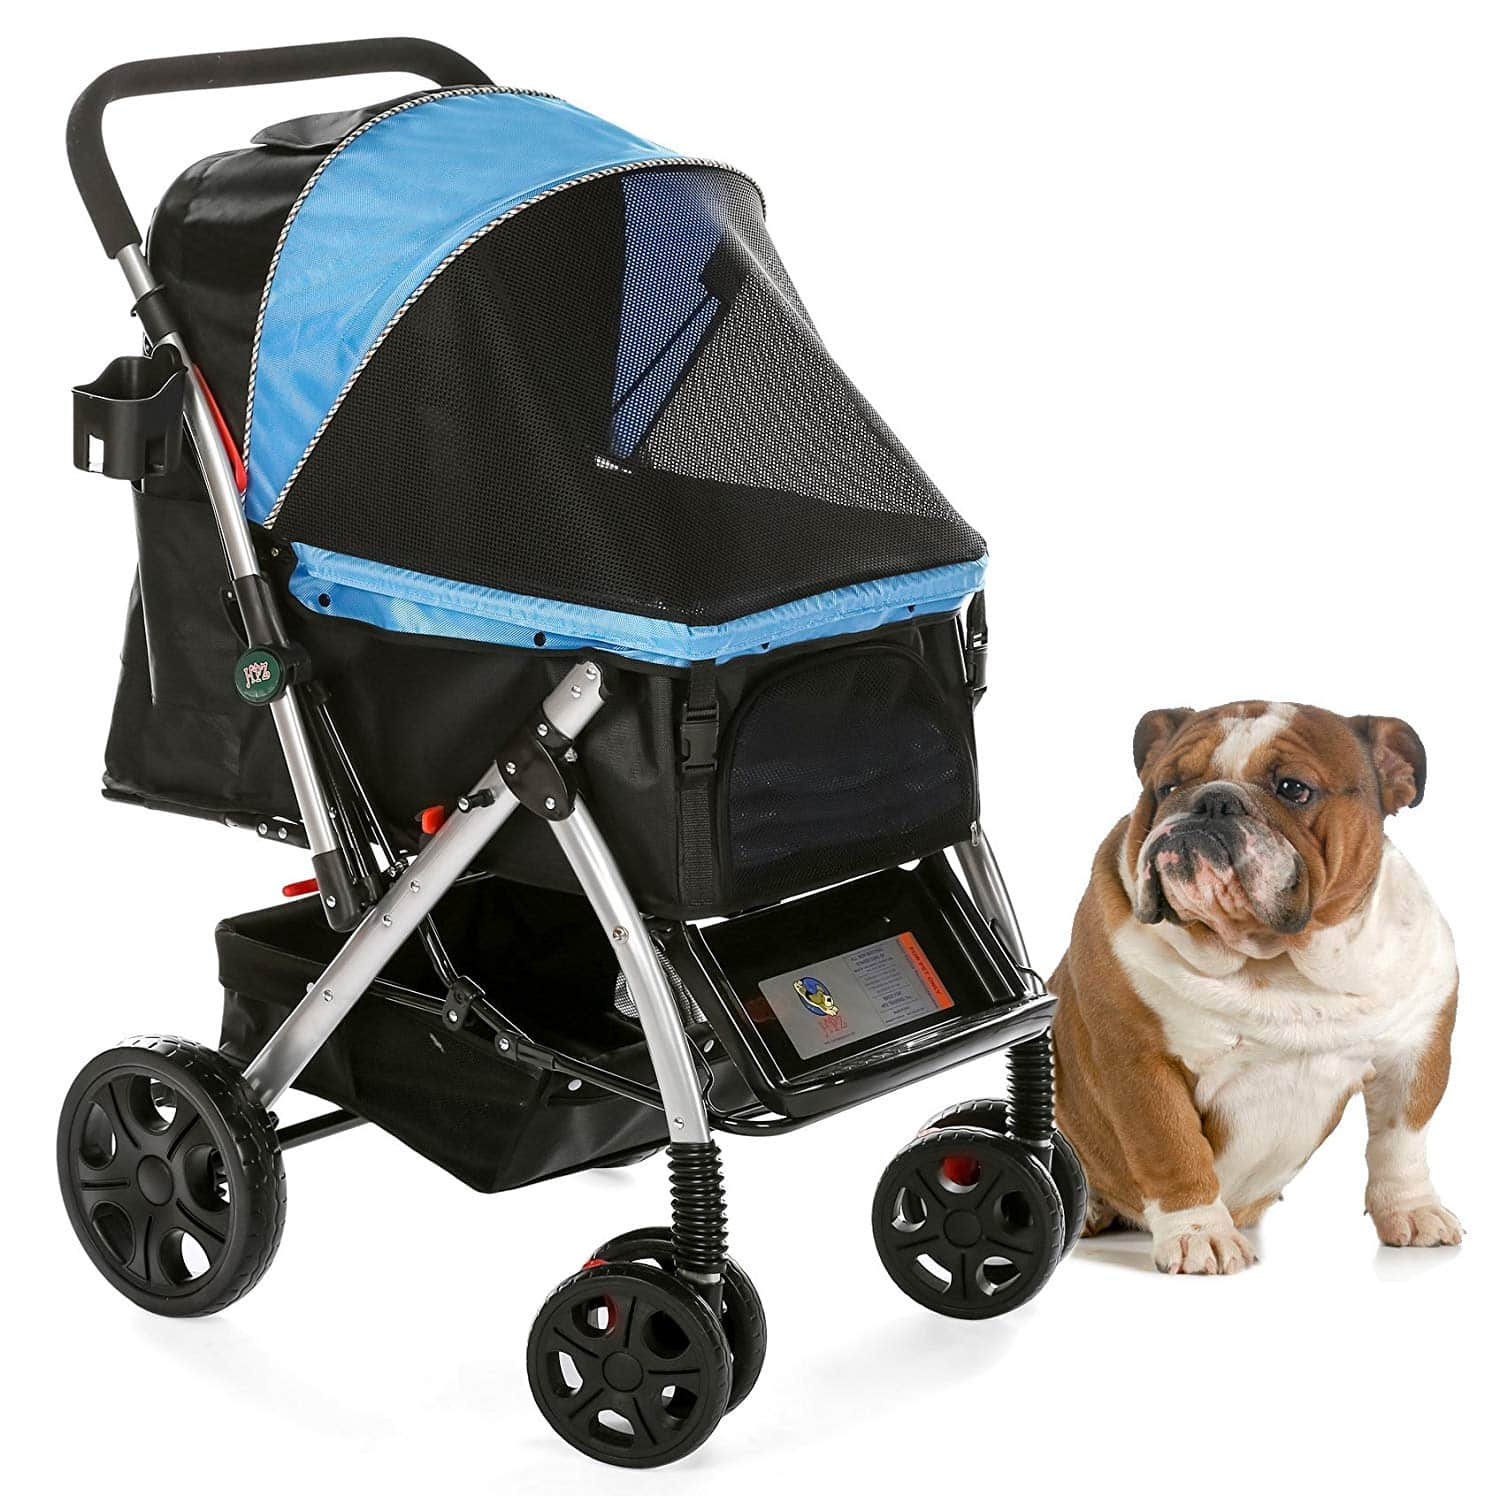 HPZ Pet Rover Premium Heavy Duty Dog Stroller